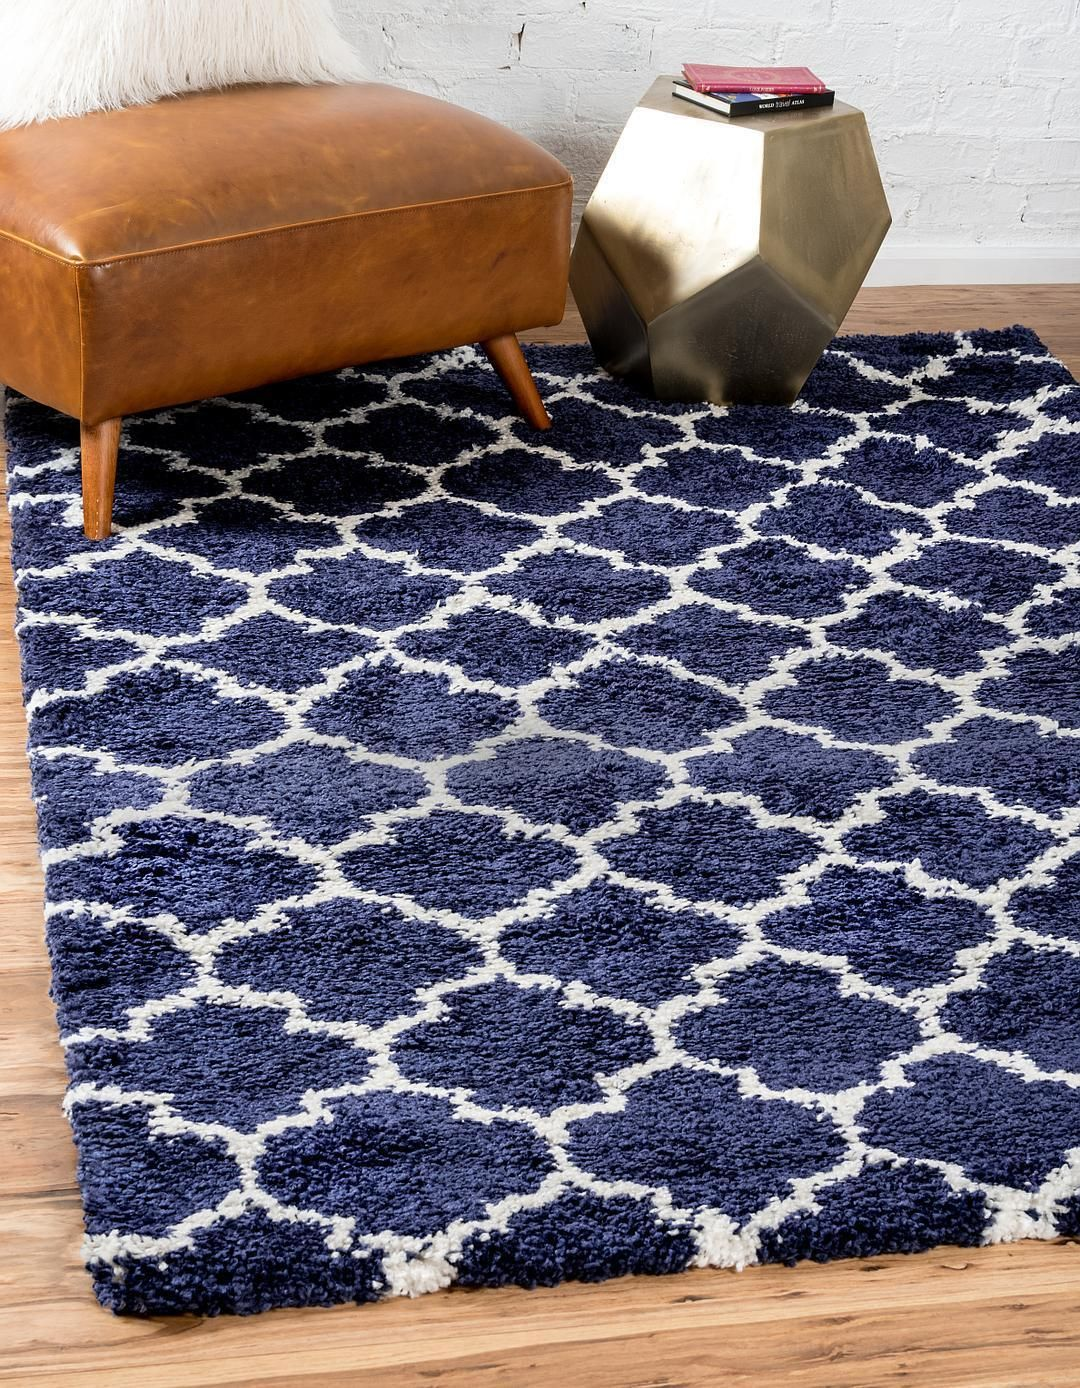 Navy Blue 8 X 10 Marrakesh Shag Rug Area Rugs Esalerugs